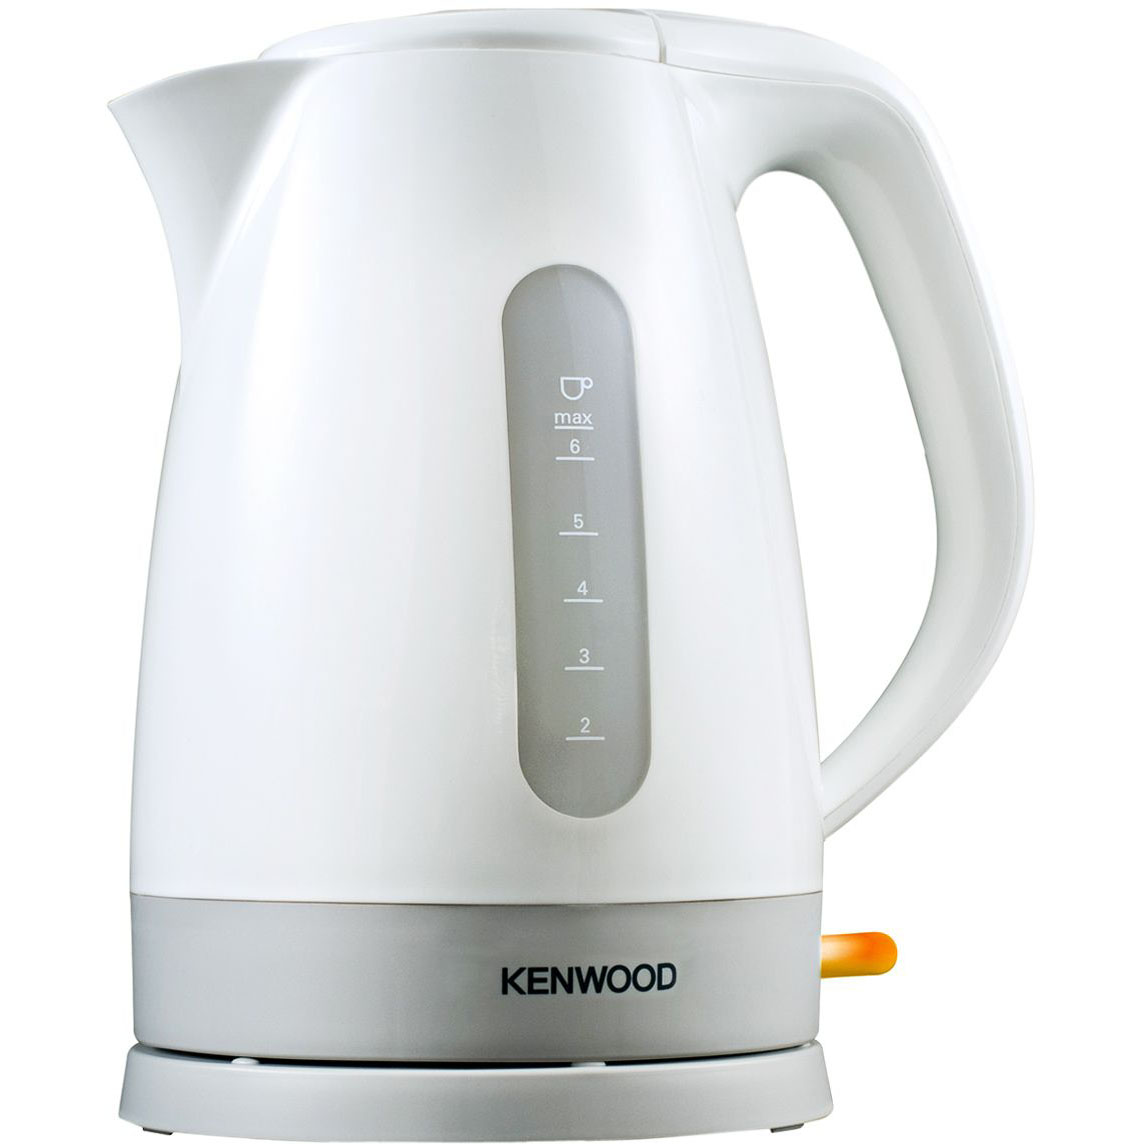 Kenwood JKP280 Kettle - White